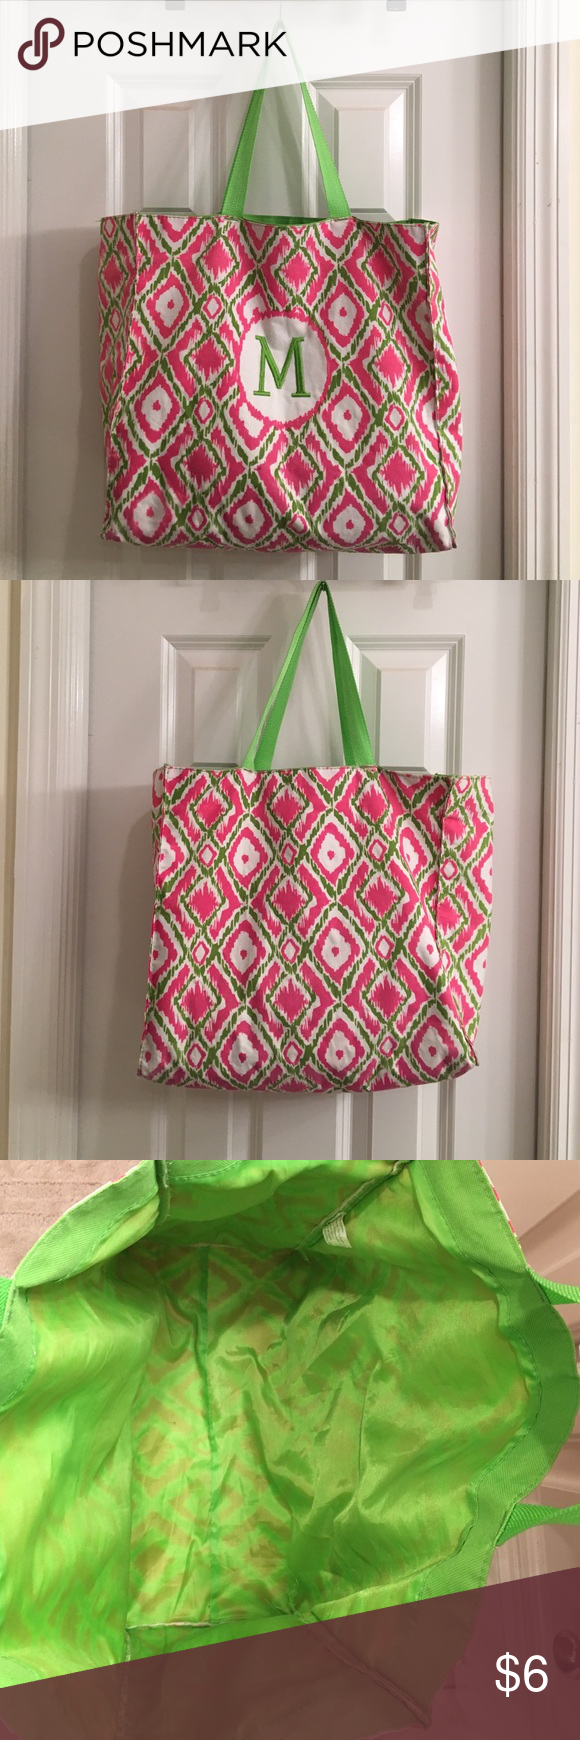 Bag 100% polyester with sewn in liner Bag 100% polyester with green sewn in liner, light wear good condition Bags Totes